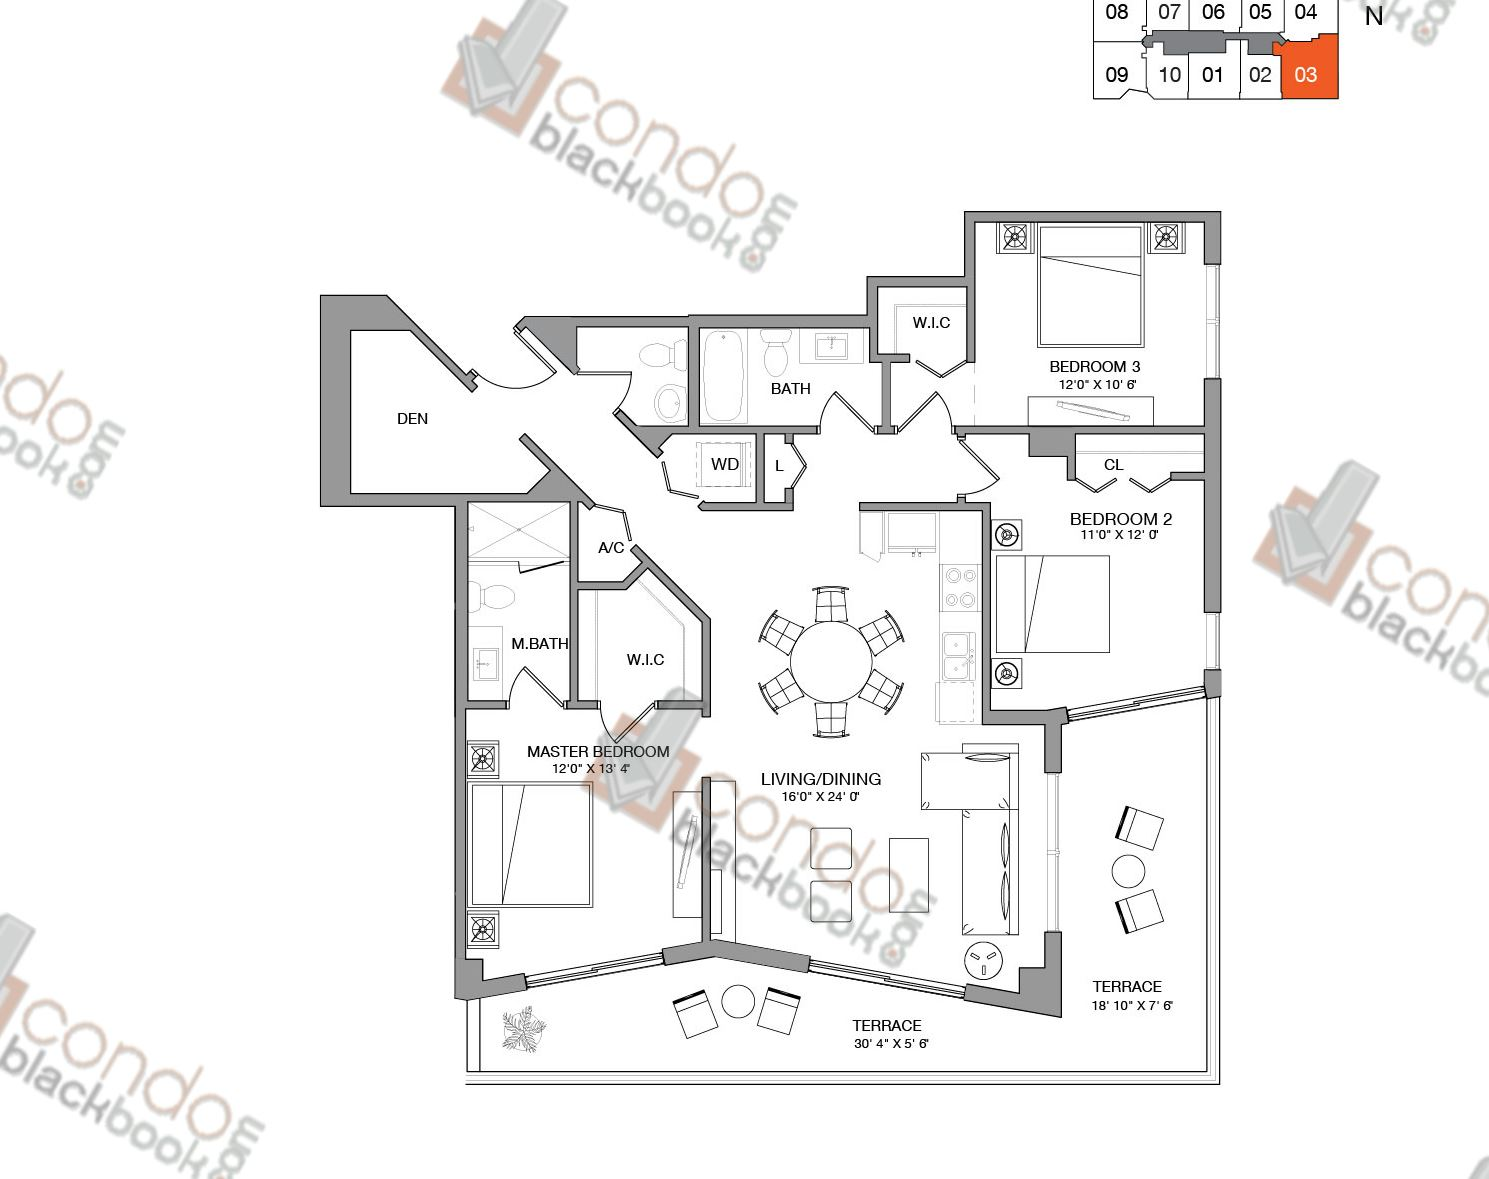 Floor plan for Brickell Ten Brickell Miami, model Residence Three, line 03, 3/2.5+Den bedrooms, 1,387 sq ft